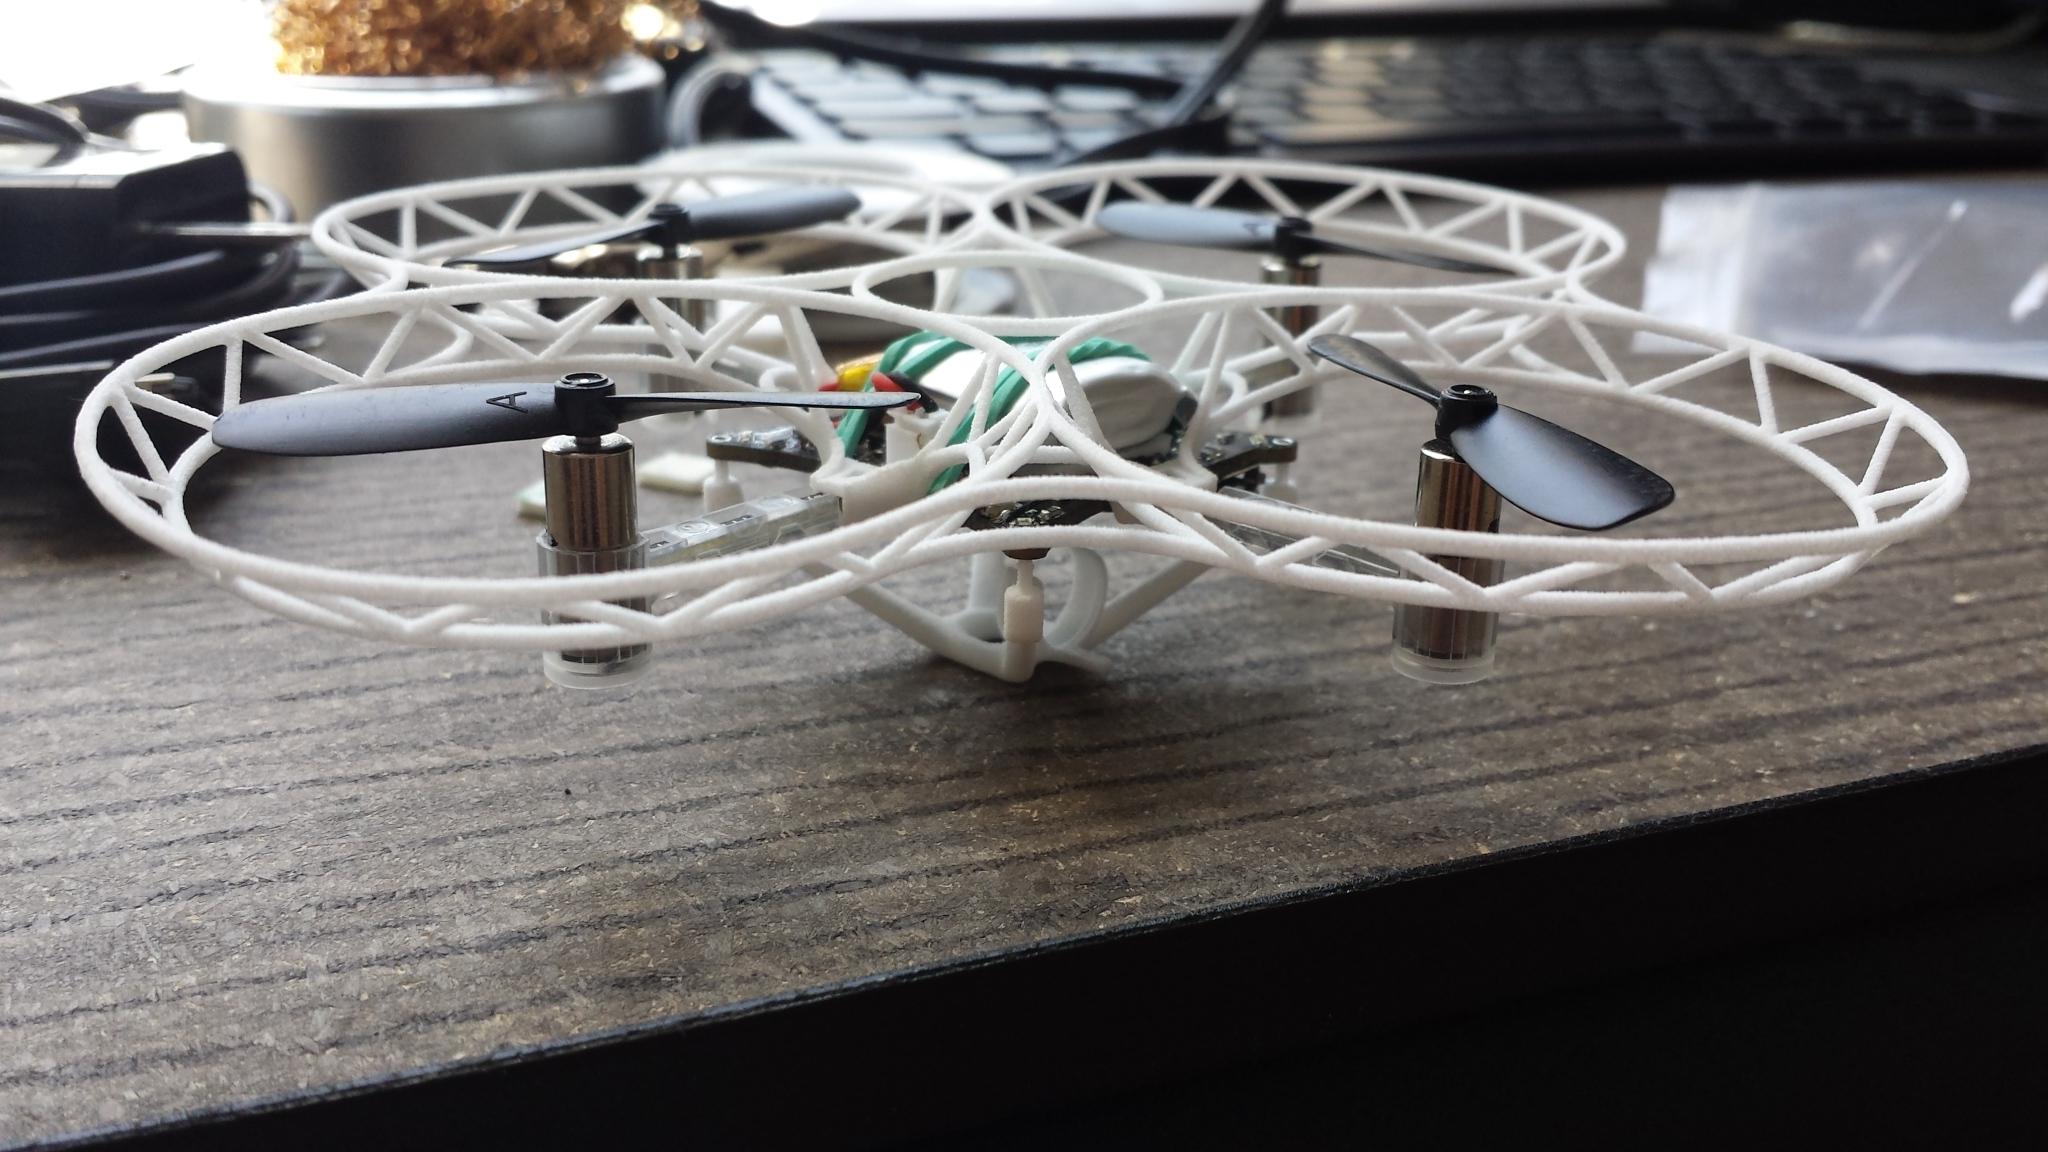 Crazyflie with 3D printed frame